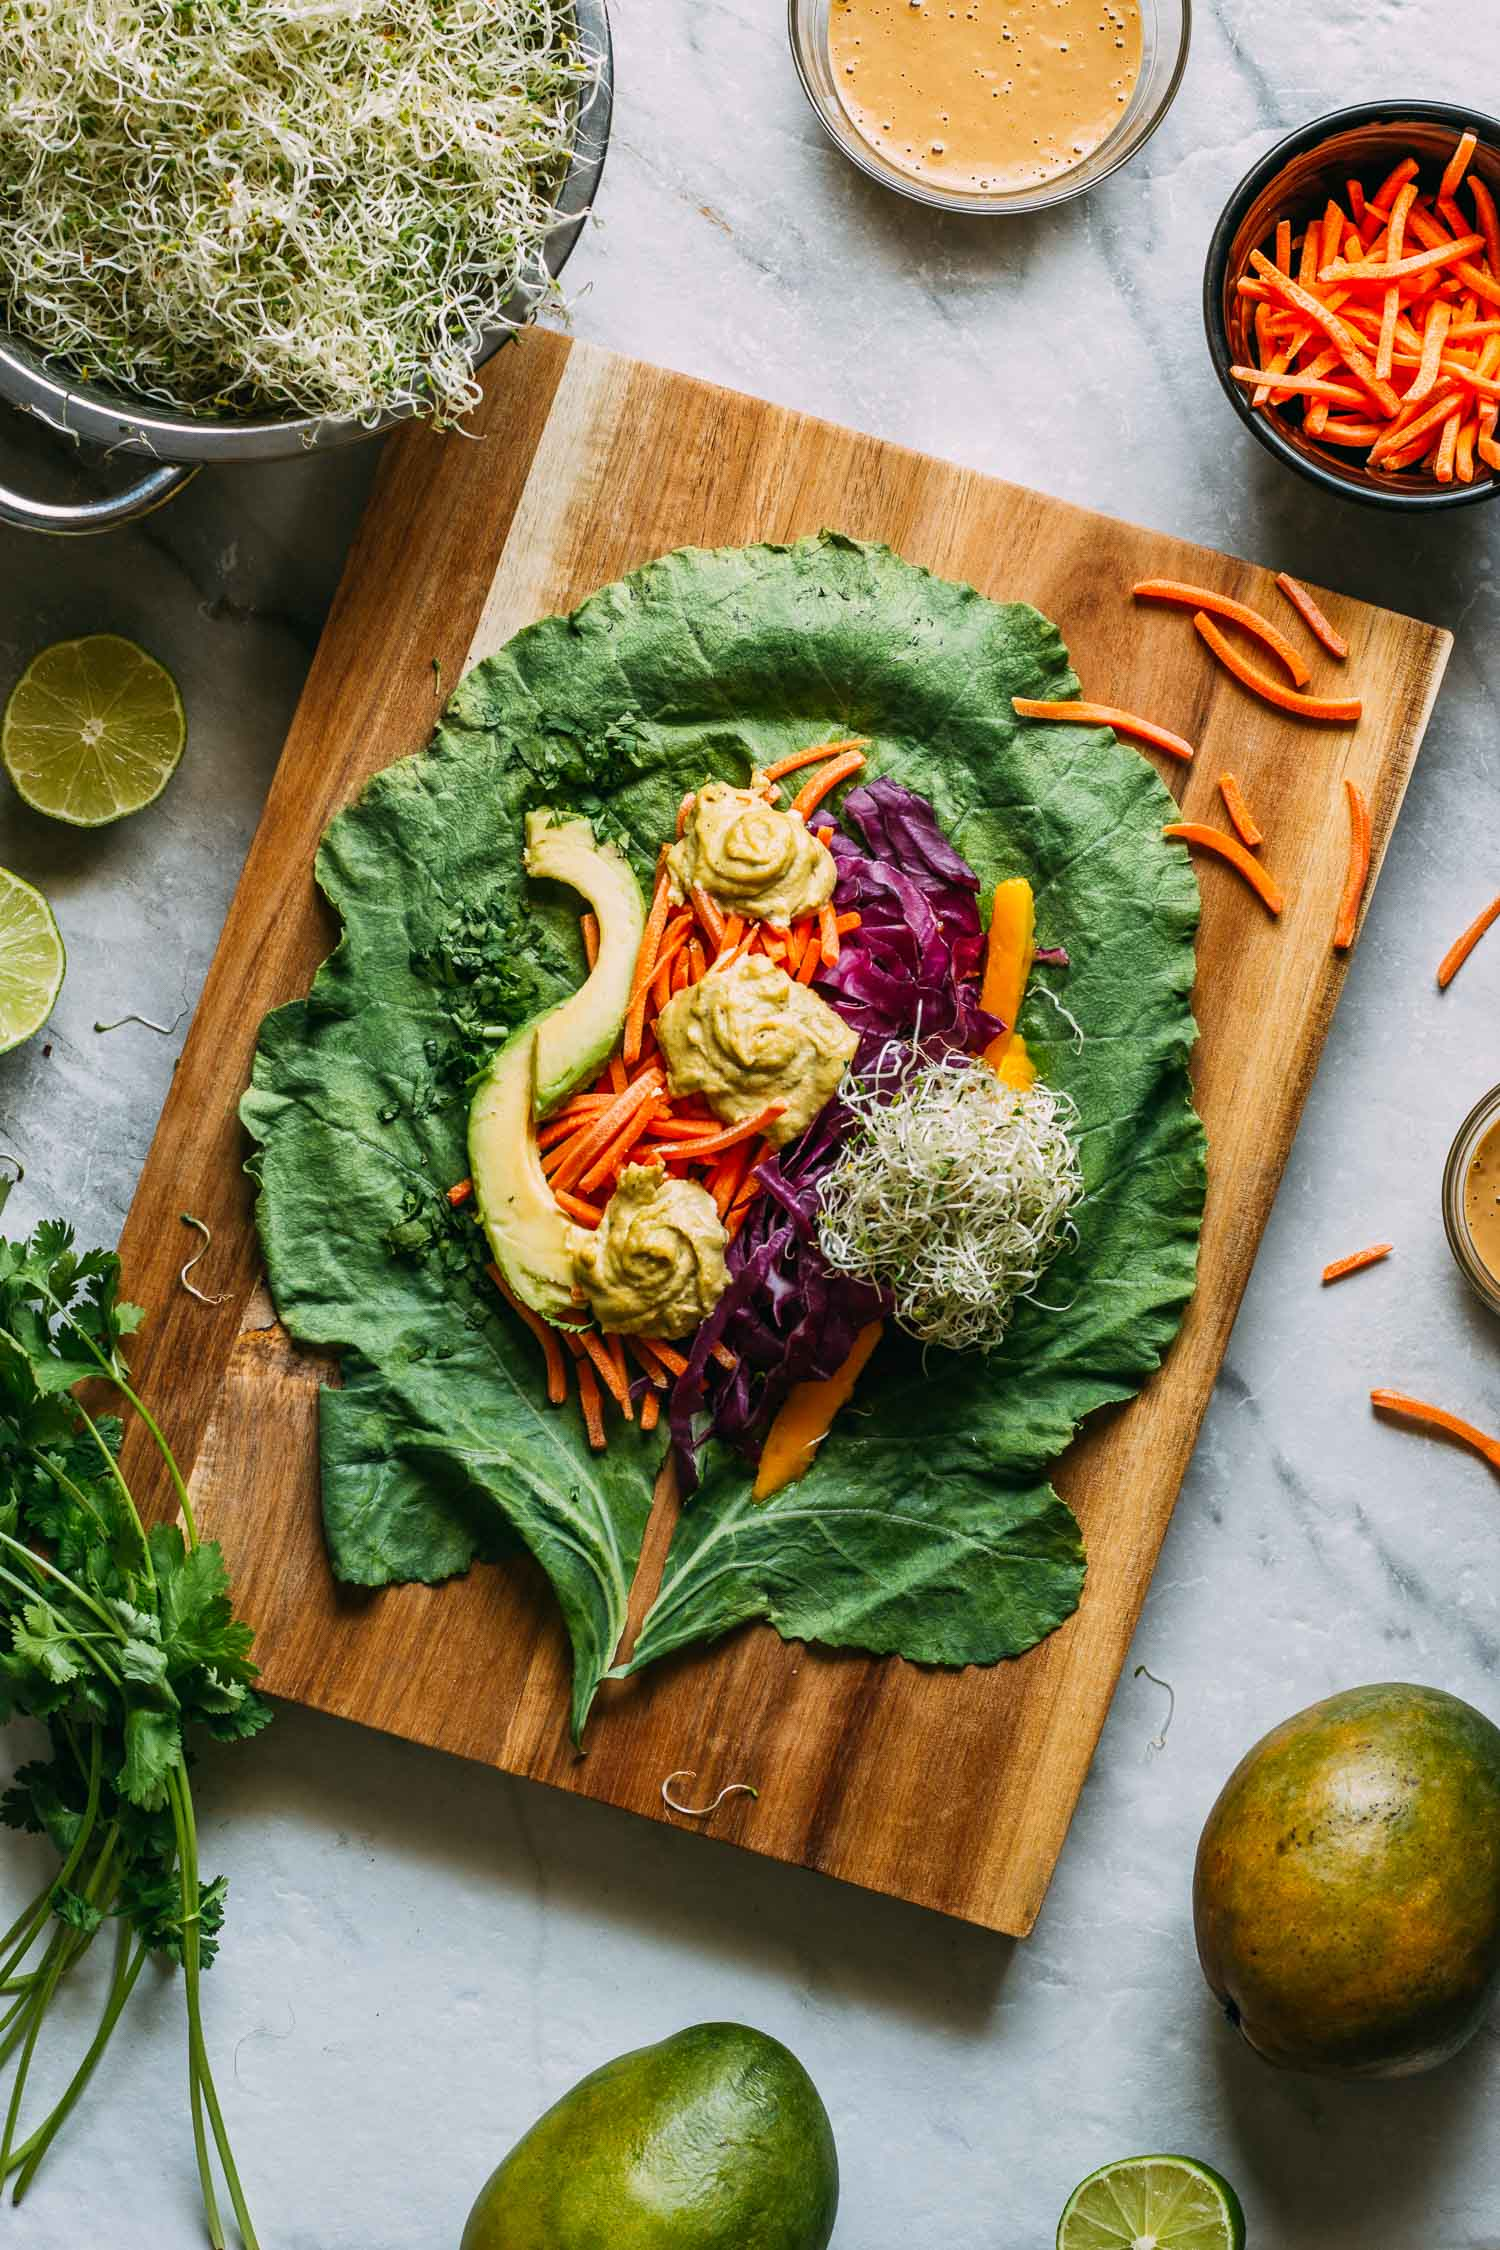 Mango Cashew Collard Wrap #collard #wraps #vegan #vegetarian #avocado #mango #sprouts #greens #recipe #peanut #sauce #thai #wrap #wfpbno #wfpb #raw